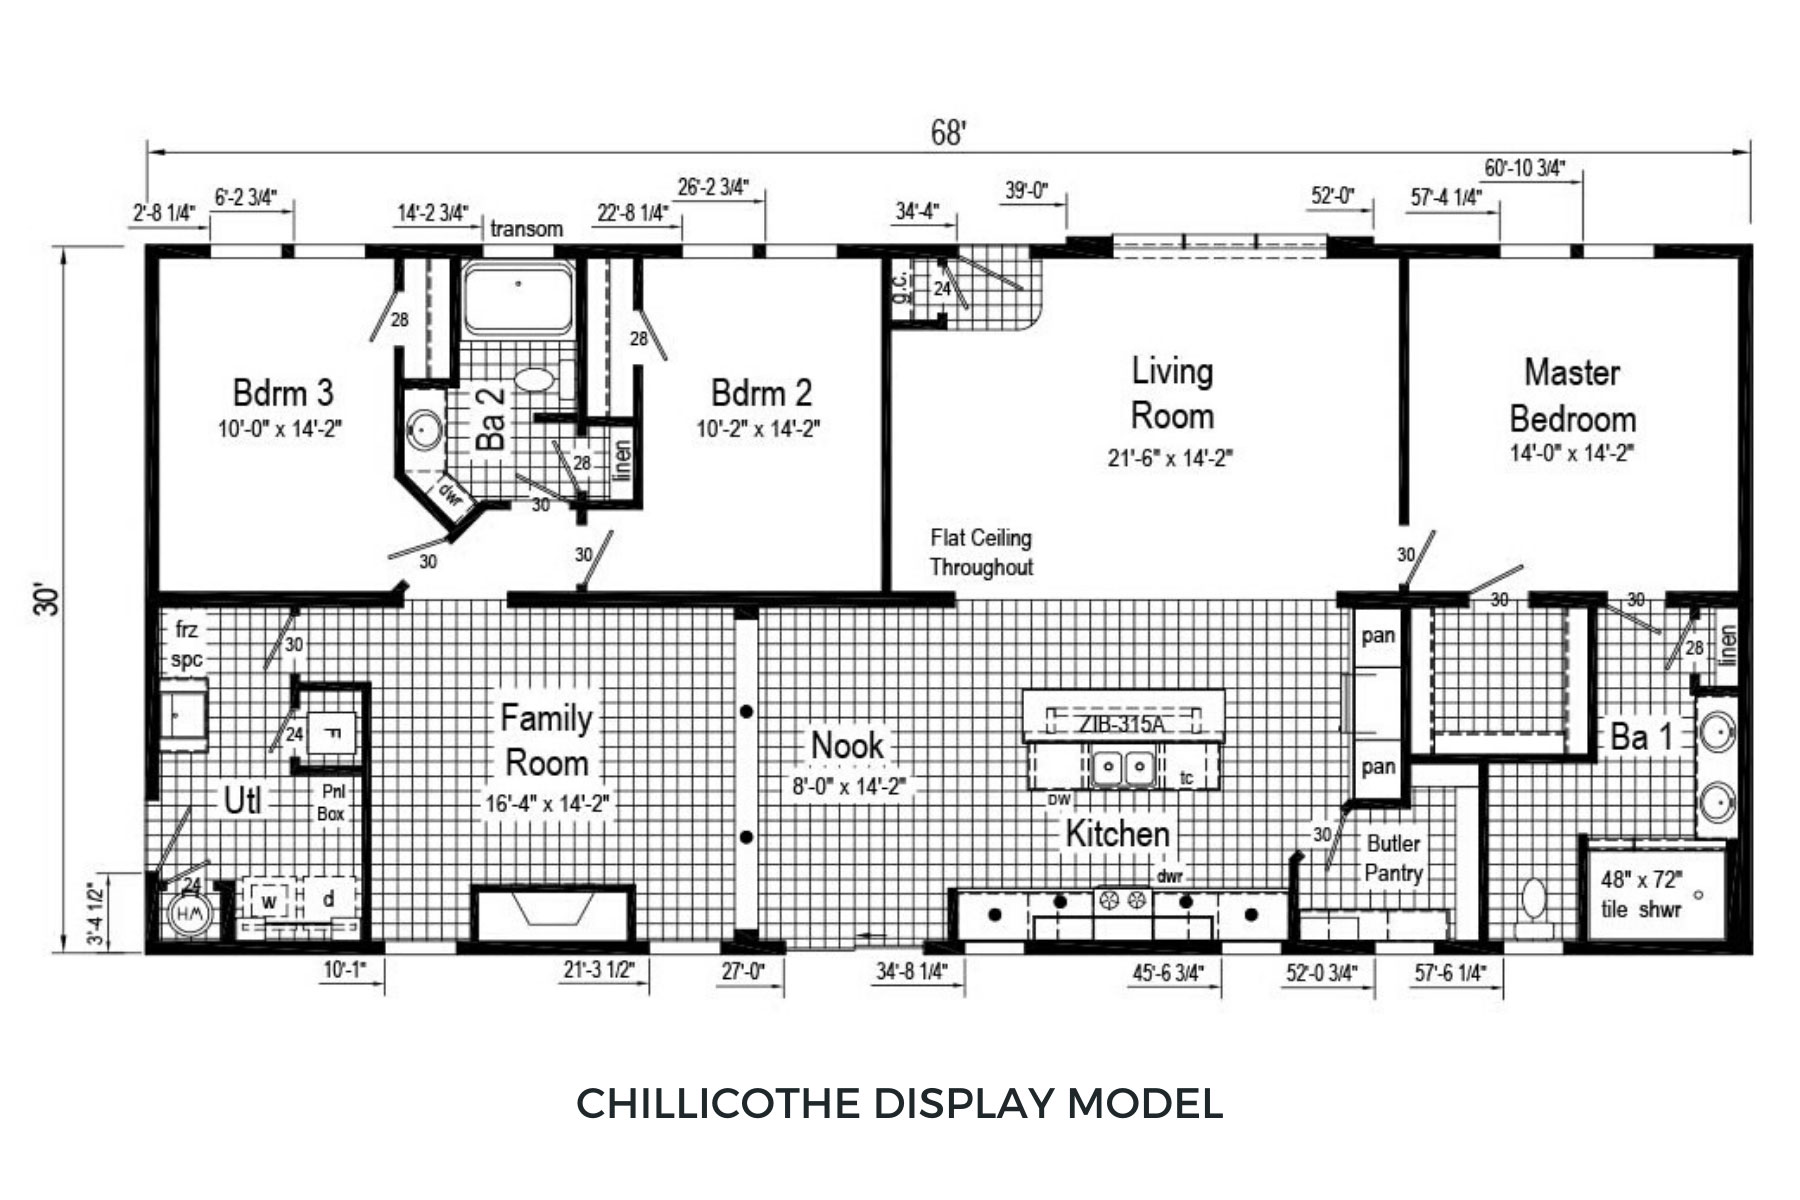 Commodore-Douglas-RX-765-Chillicothe-Floor-Plan-1